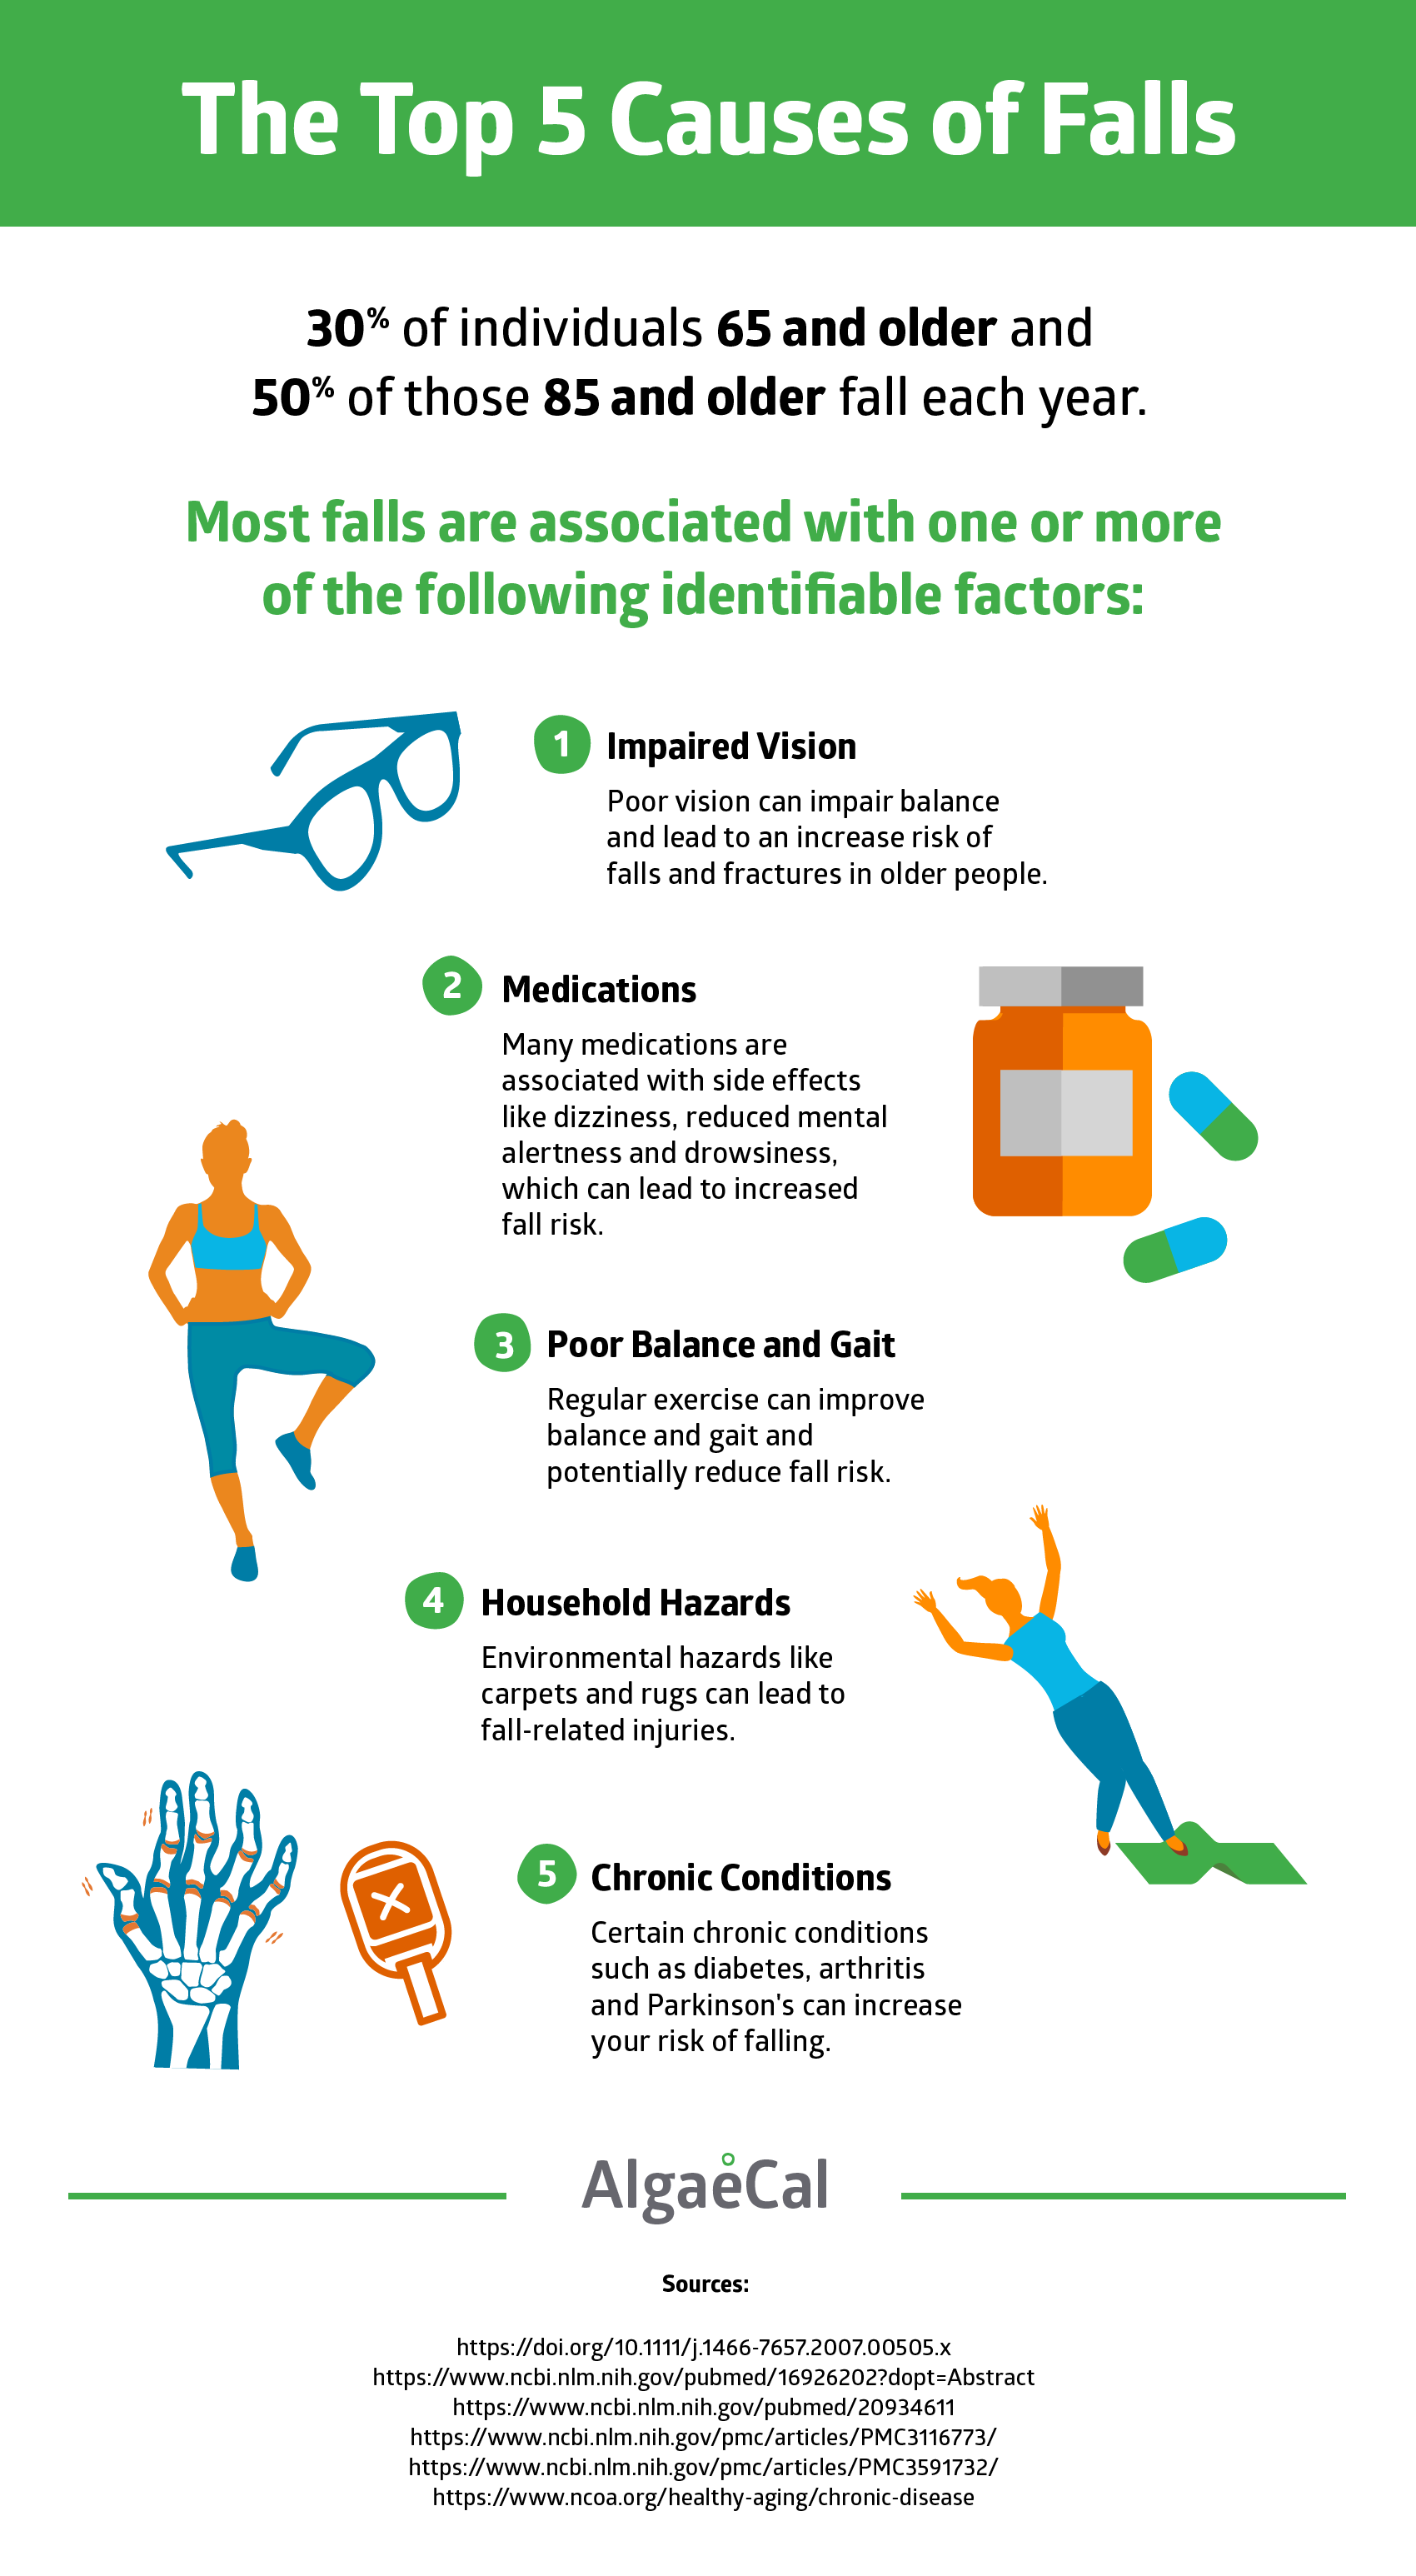 Top 5 Causes of Falls infographic